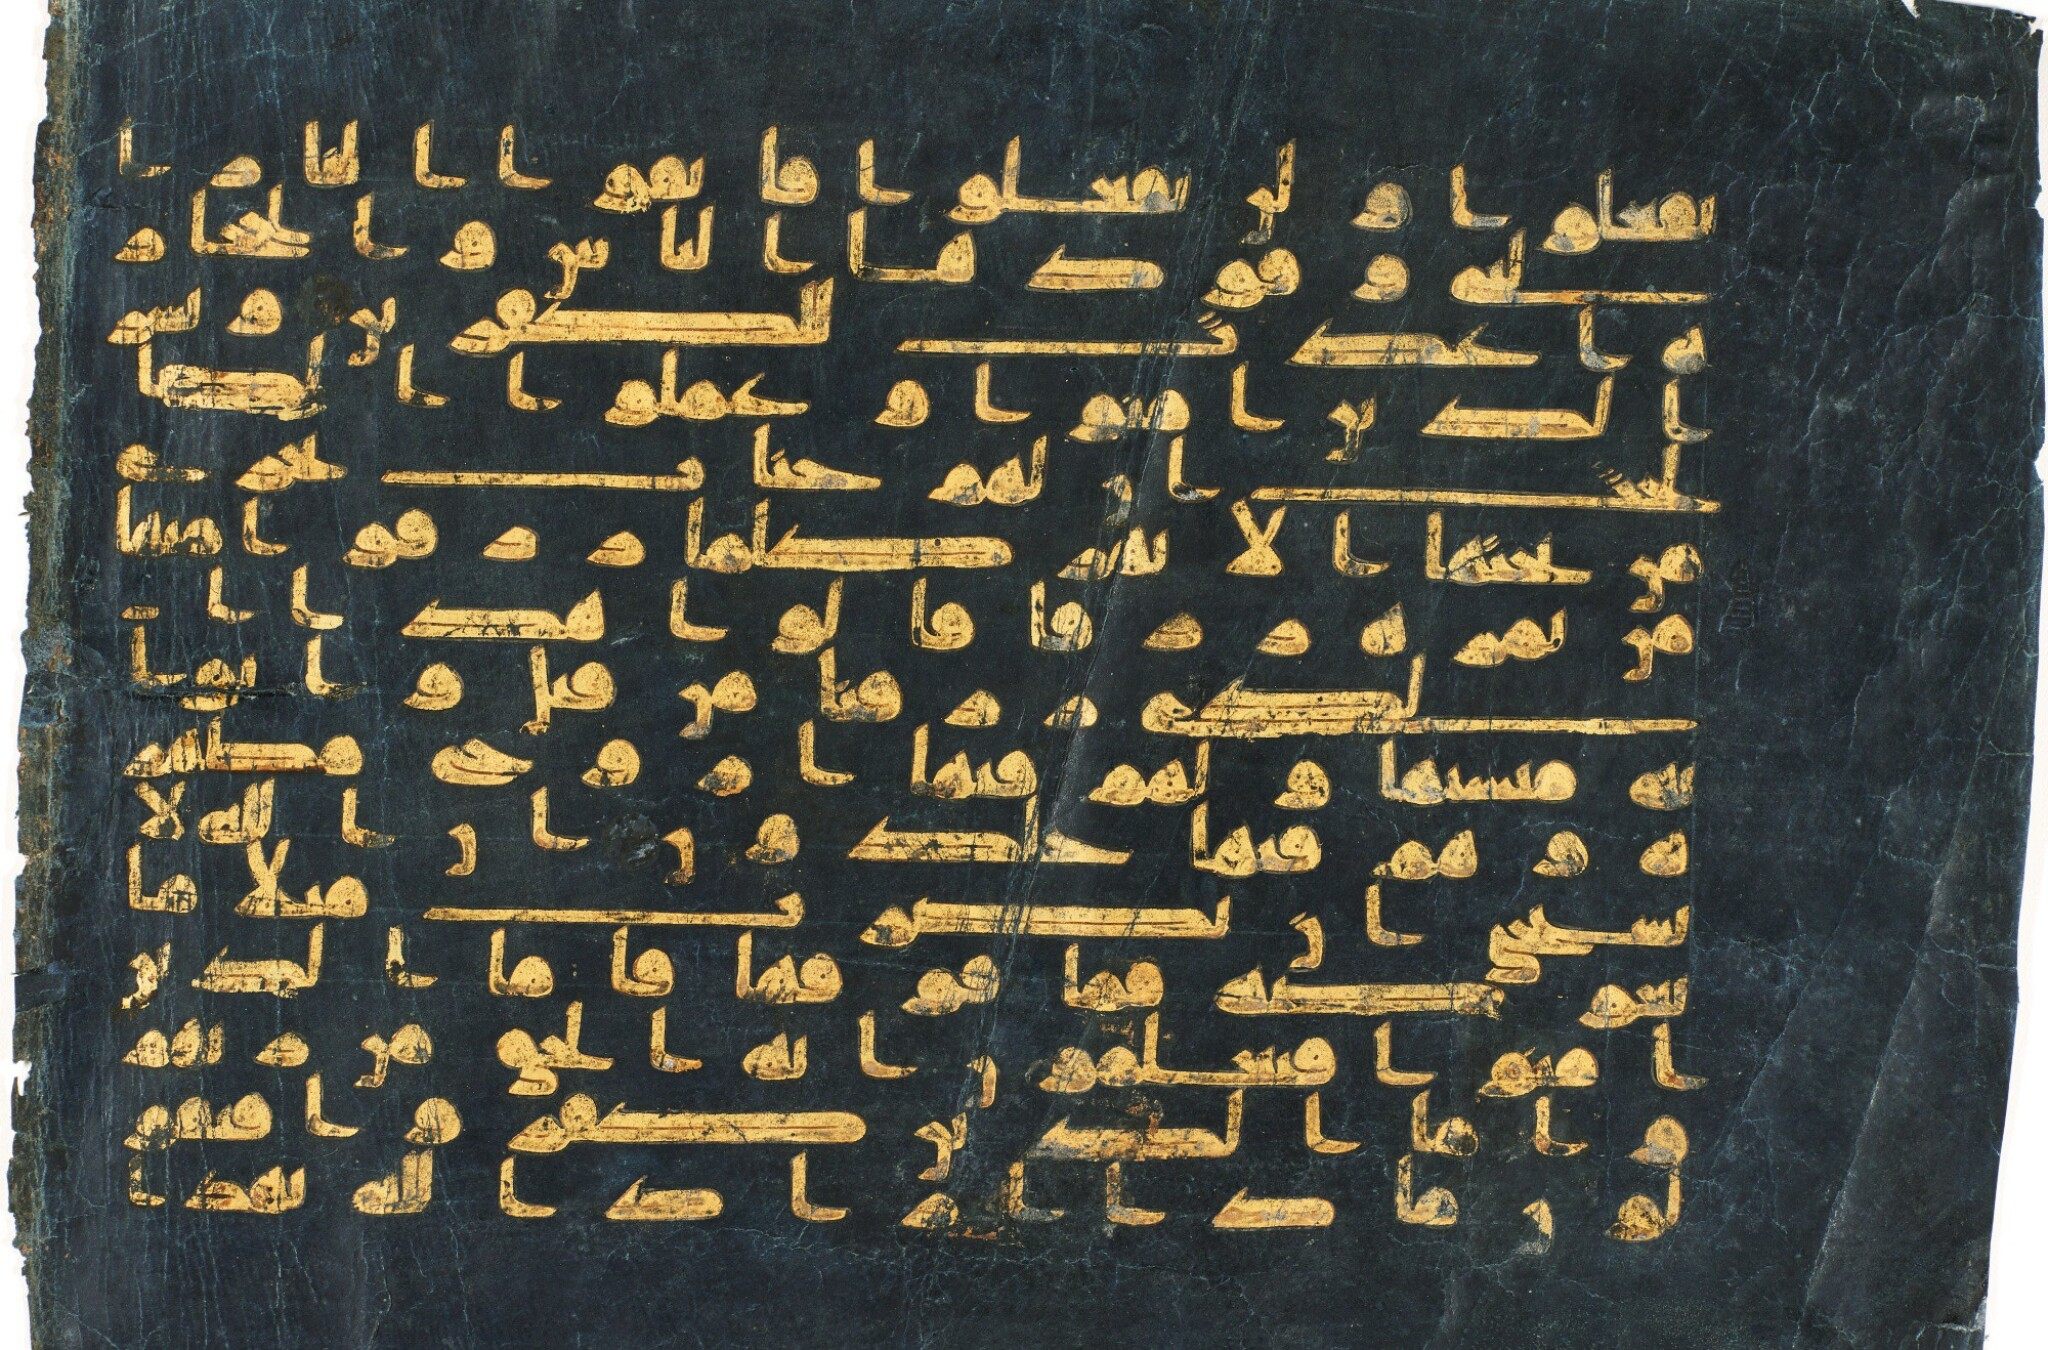 View full screen - View 1 of Lot 107. A LARGE QUR'AN LEAF IN GOLD KUFIC SCRIPT ON BLUE VELLUM, NEAR EAST, NORTH AFRICA OR SOUTHERN SPAIN, 9TH-10TH CENTURY AD.